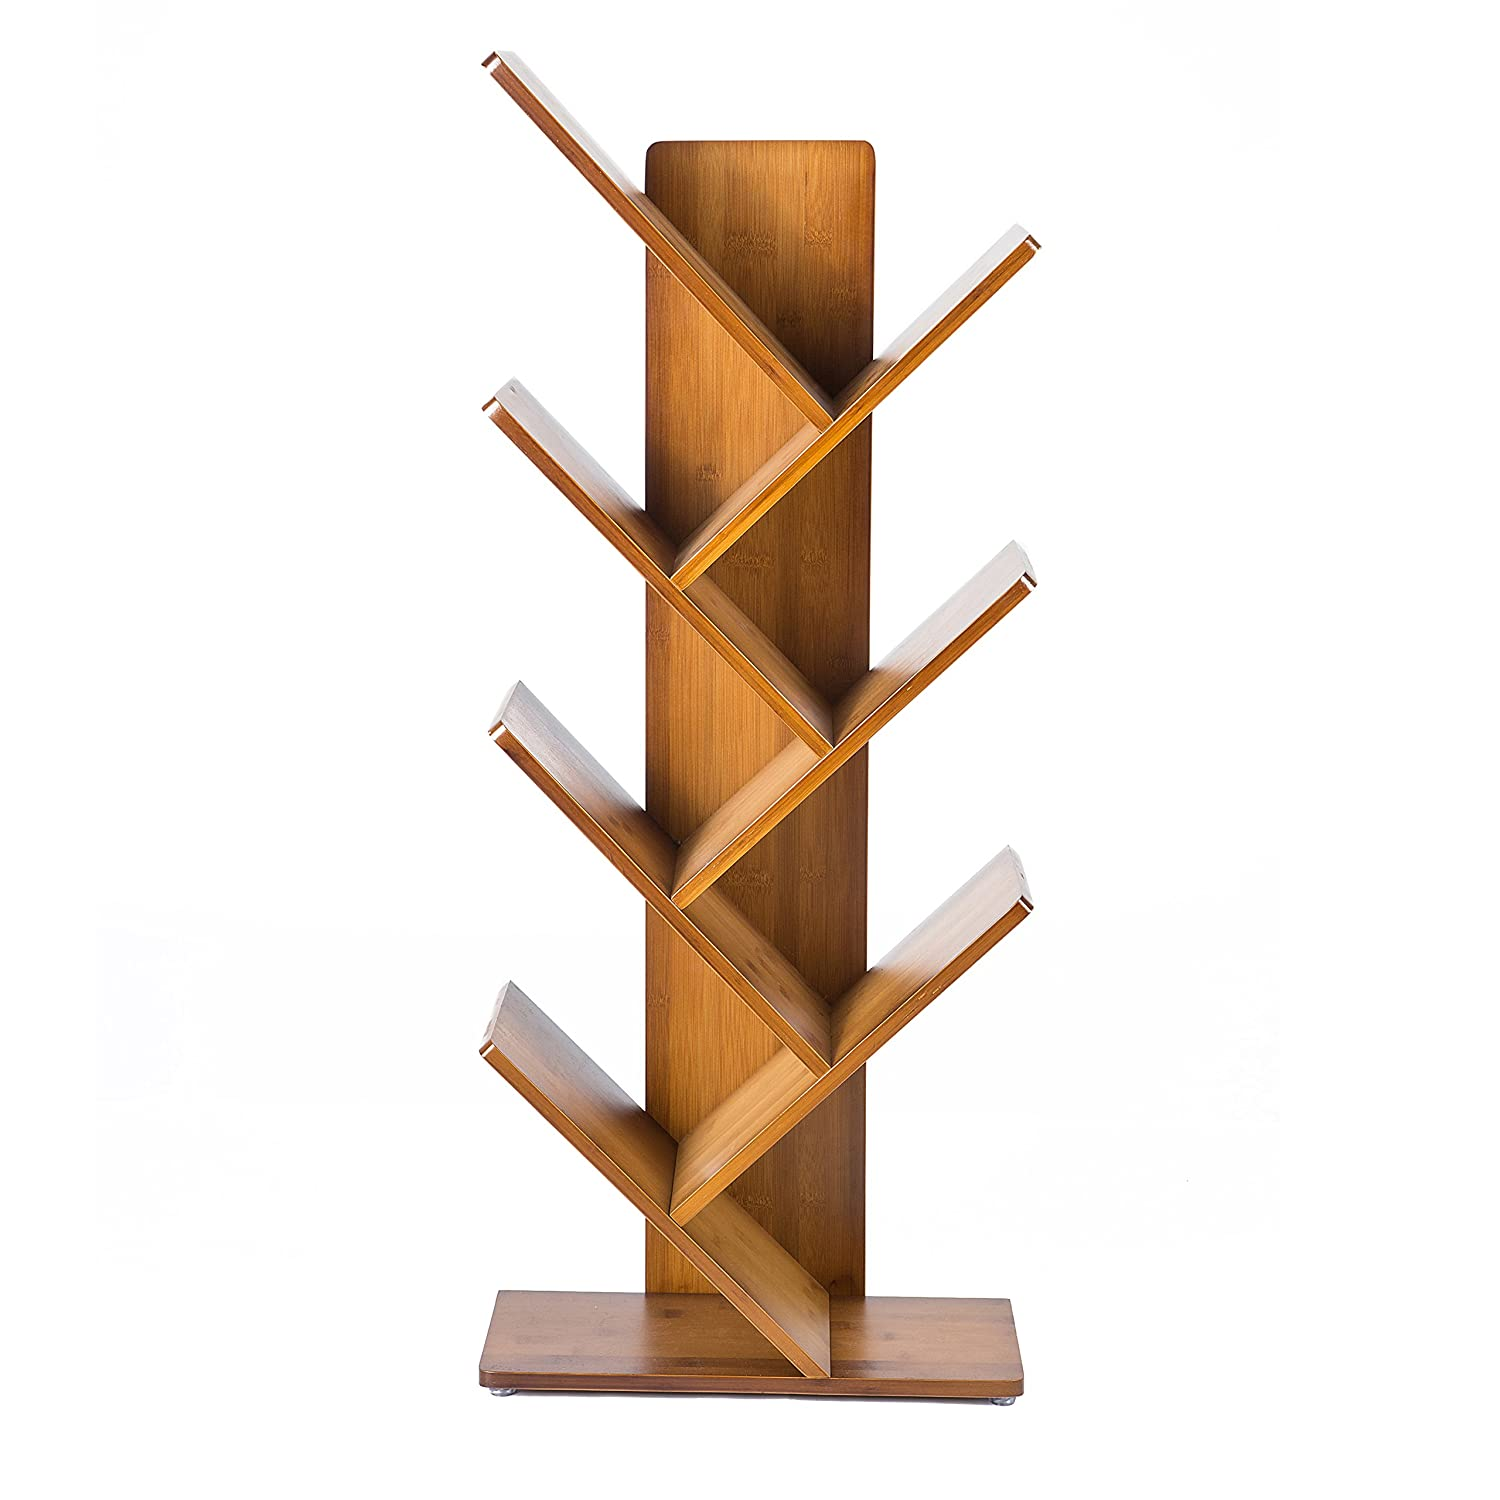 C&ahome Tree Bookshelf, 7-tier Bookcase, Bamboo Wood Book Rack, Storage  Shelves In Living Room�free-standing Cds Holder Organizer, Space Saver For